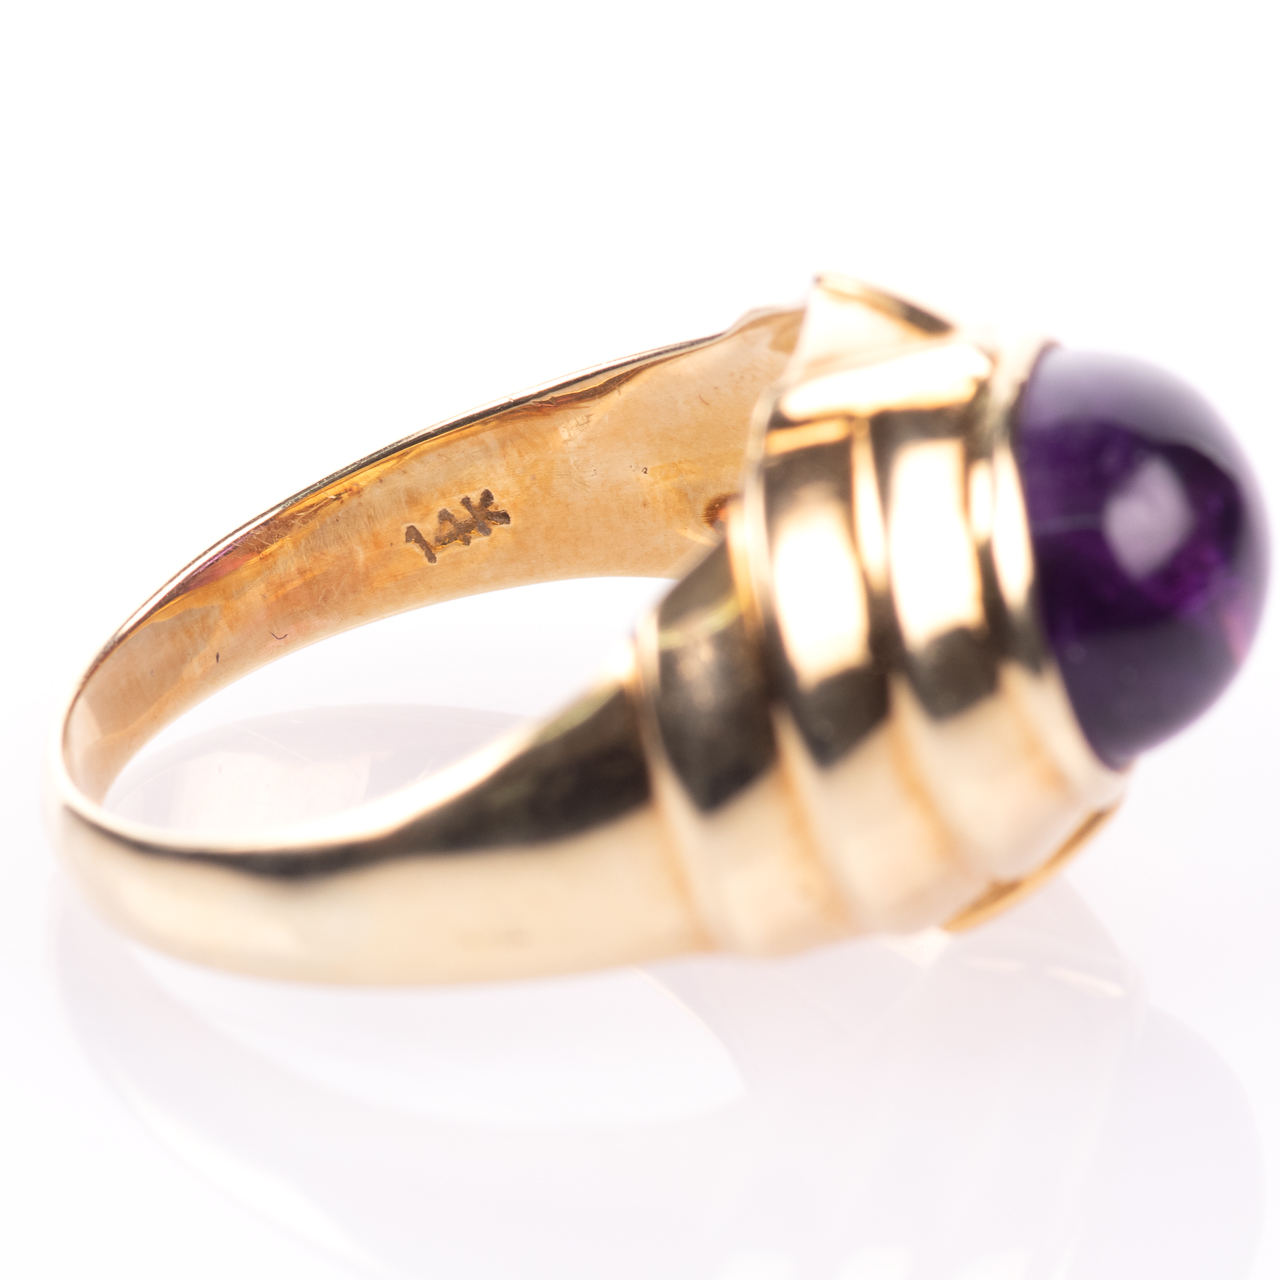 14ct Gold Amethyst Cabochon Ring Egyptian Revival Style - Image 9 of 9